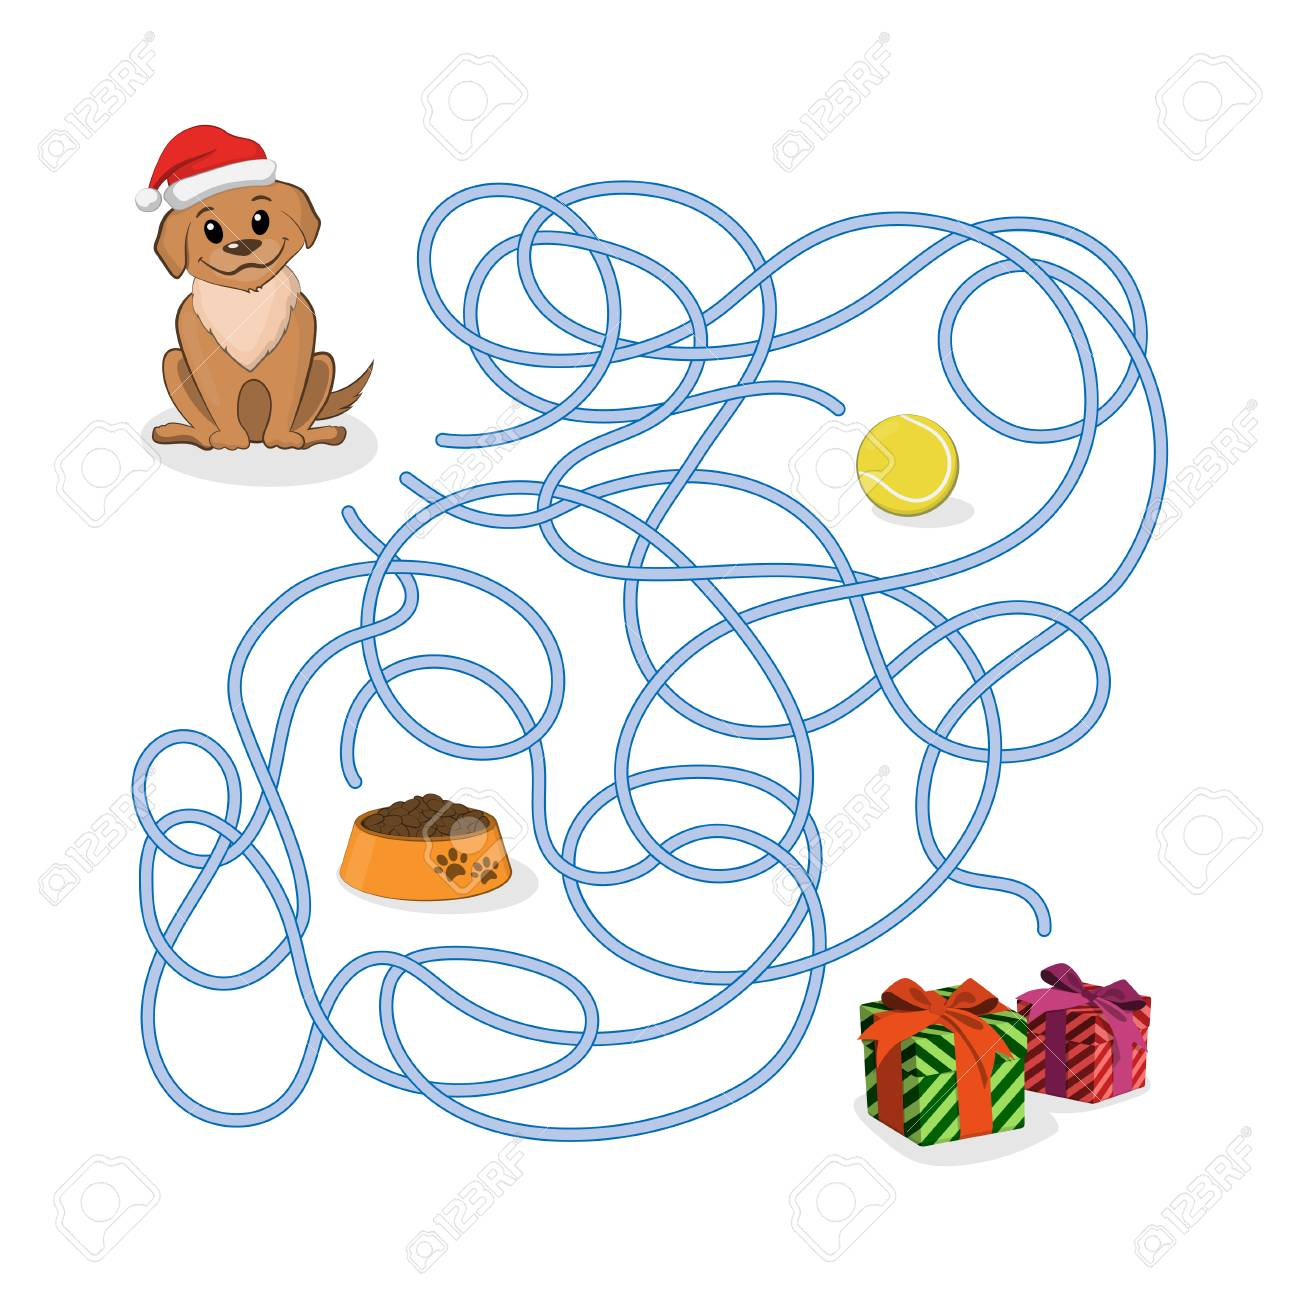 Christmas way game help the puppy pass the maze dog in santa christmas way game help the puppy pass the maze dog in santa hat in biocorpaavc